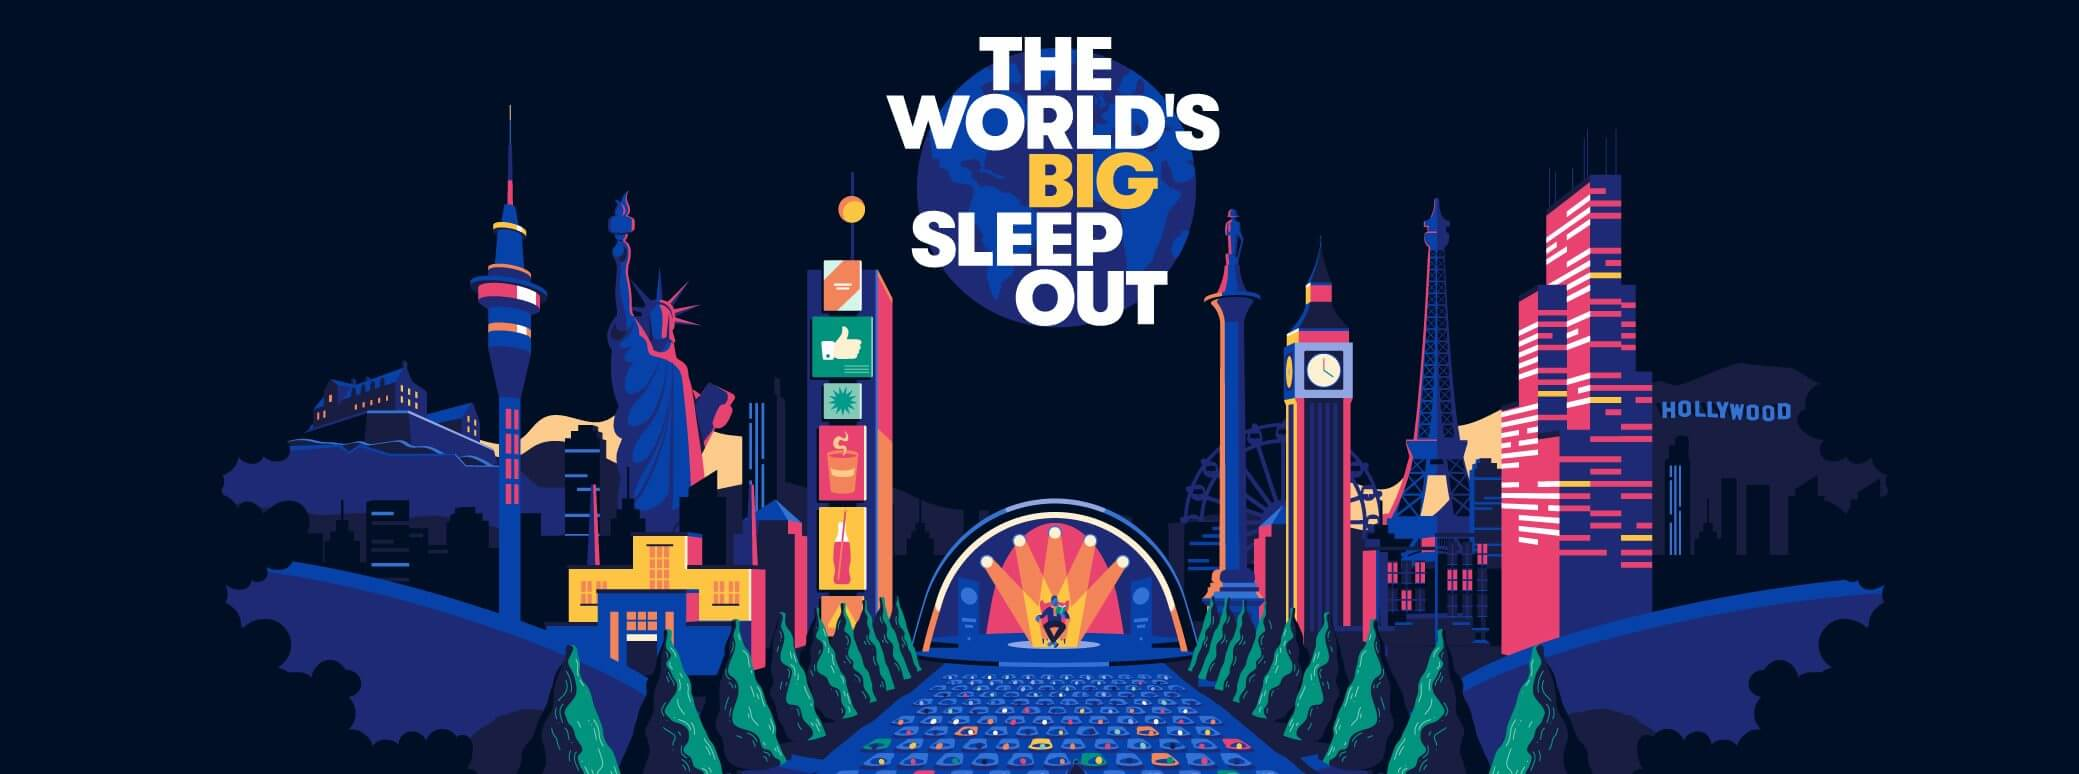 The worlds biggest sleepout